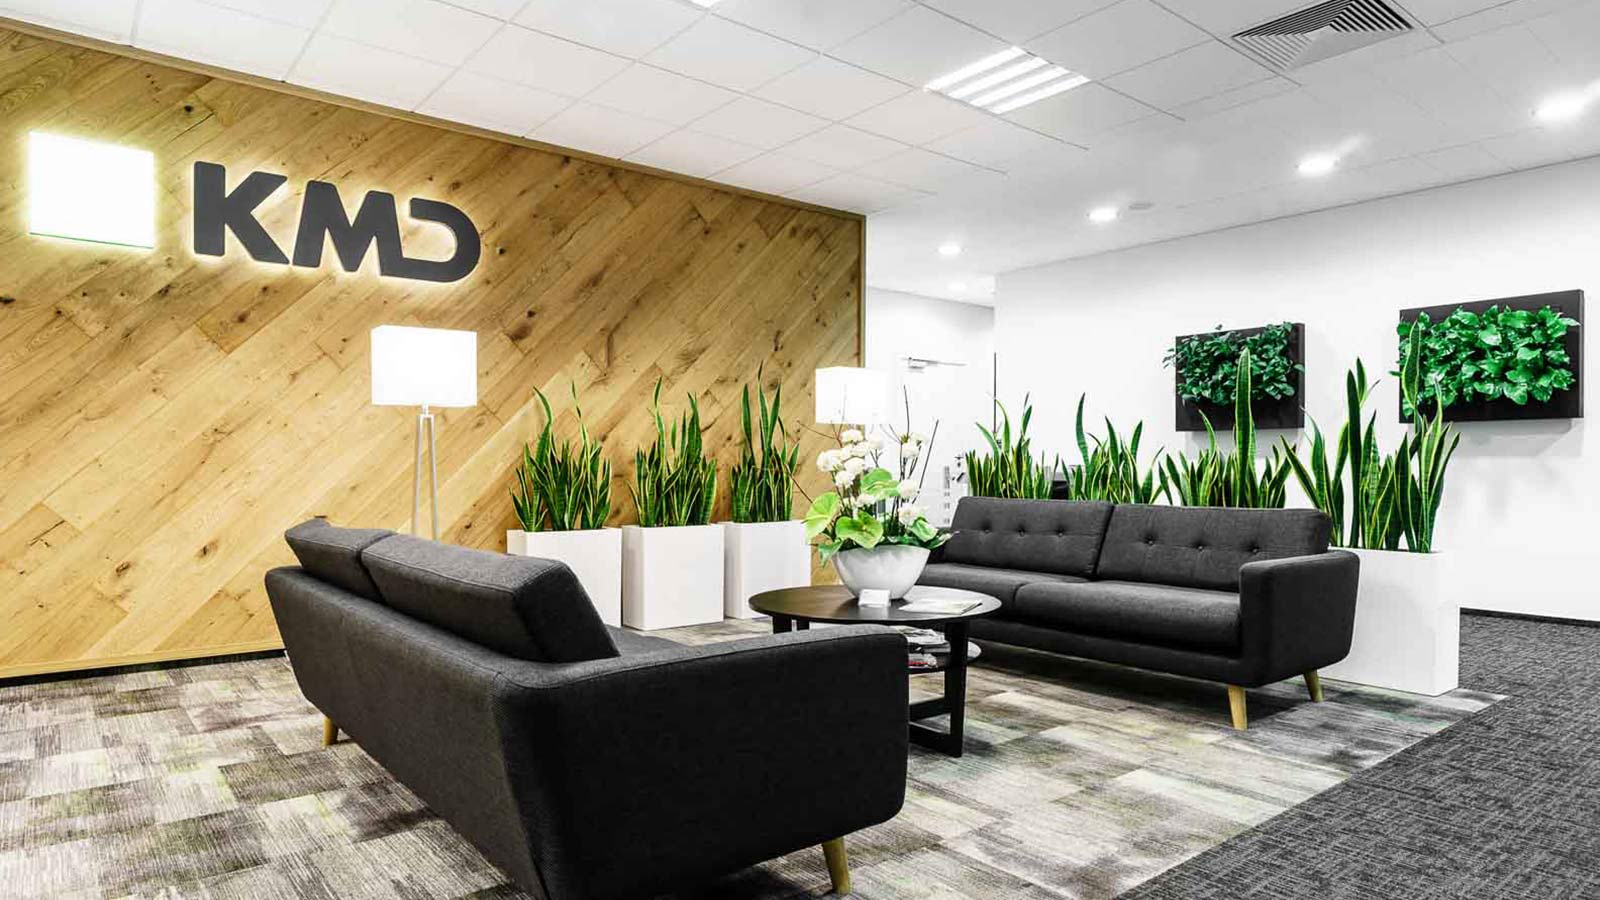 Outstanding KMD Poland office